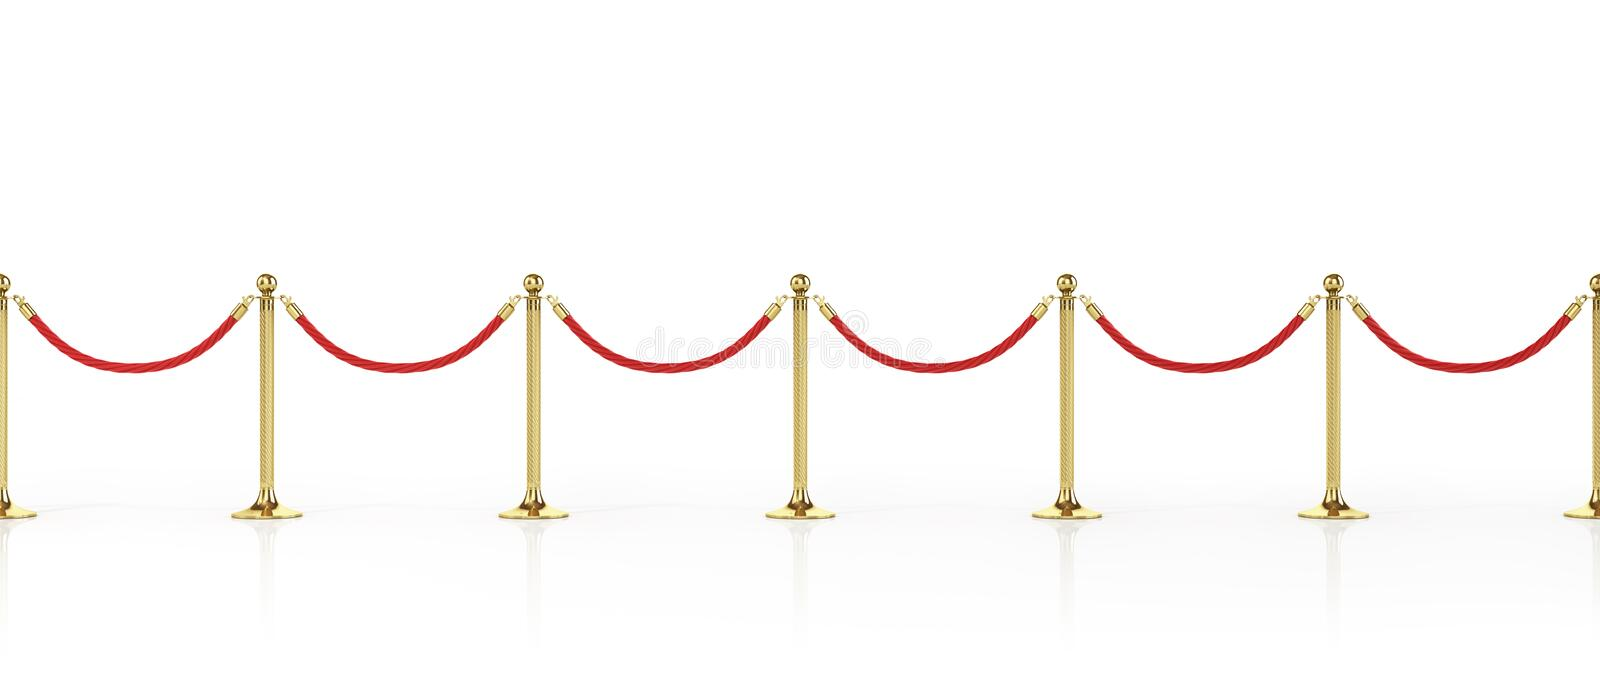 Barrier rope isolated on white. Gold fence. Luxury, VIP concept. Equipment for events. 3d illustration royalty free illustration